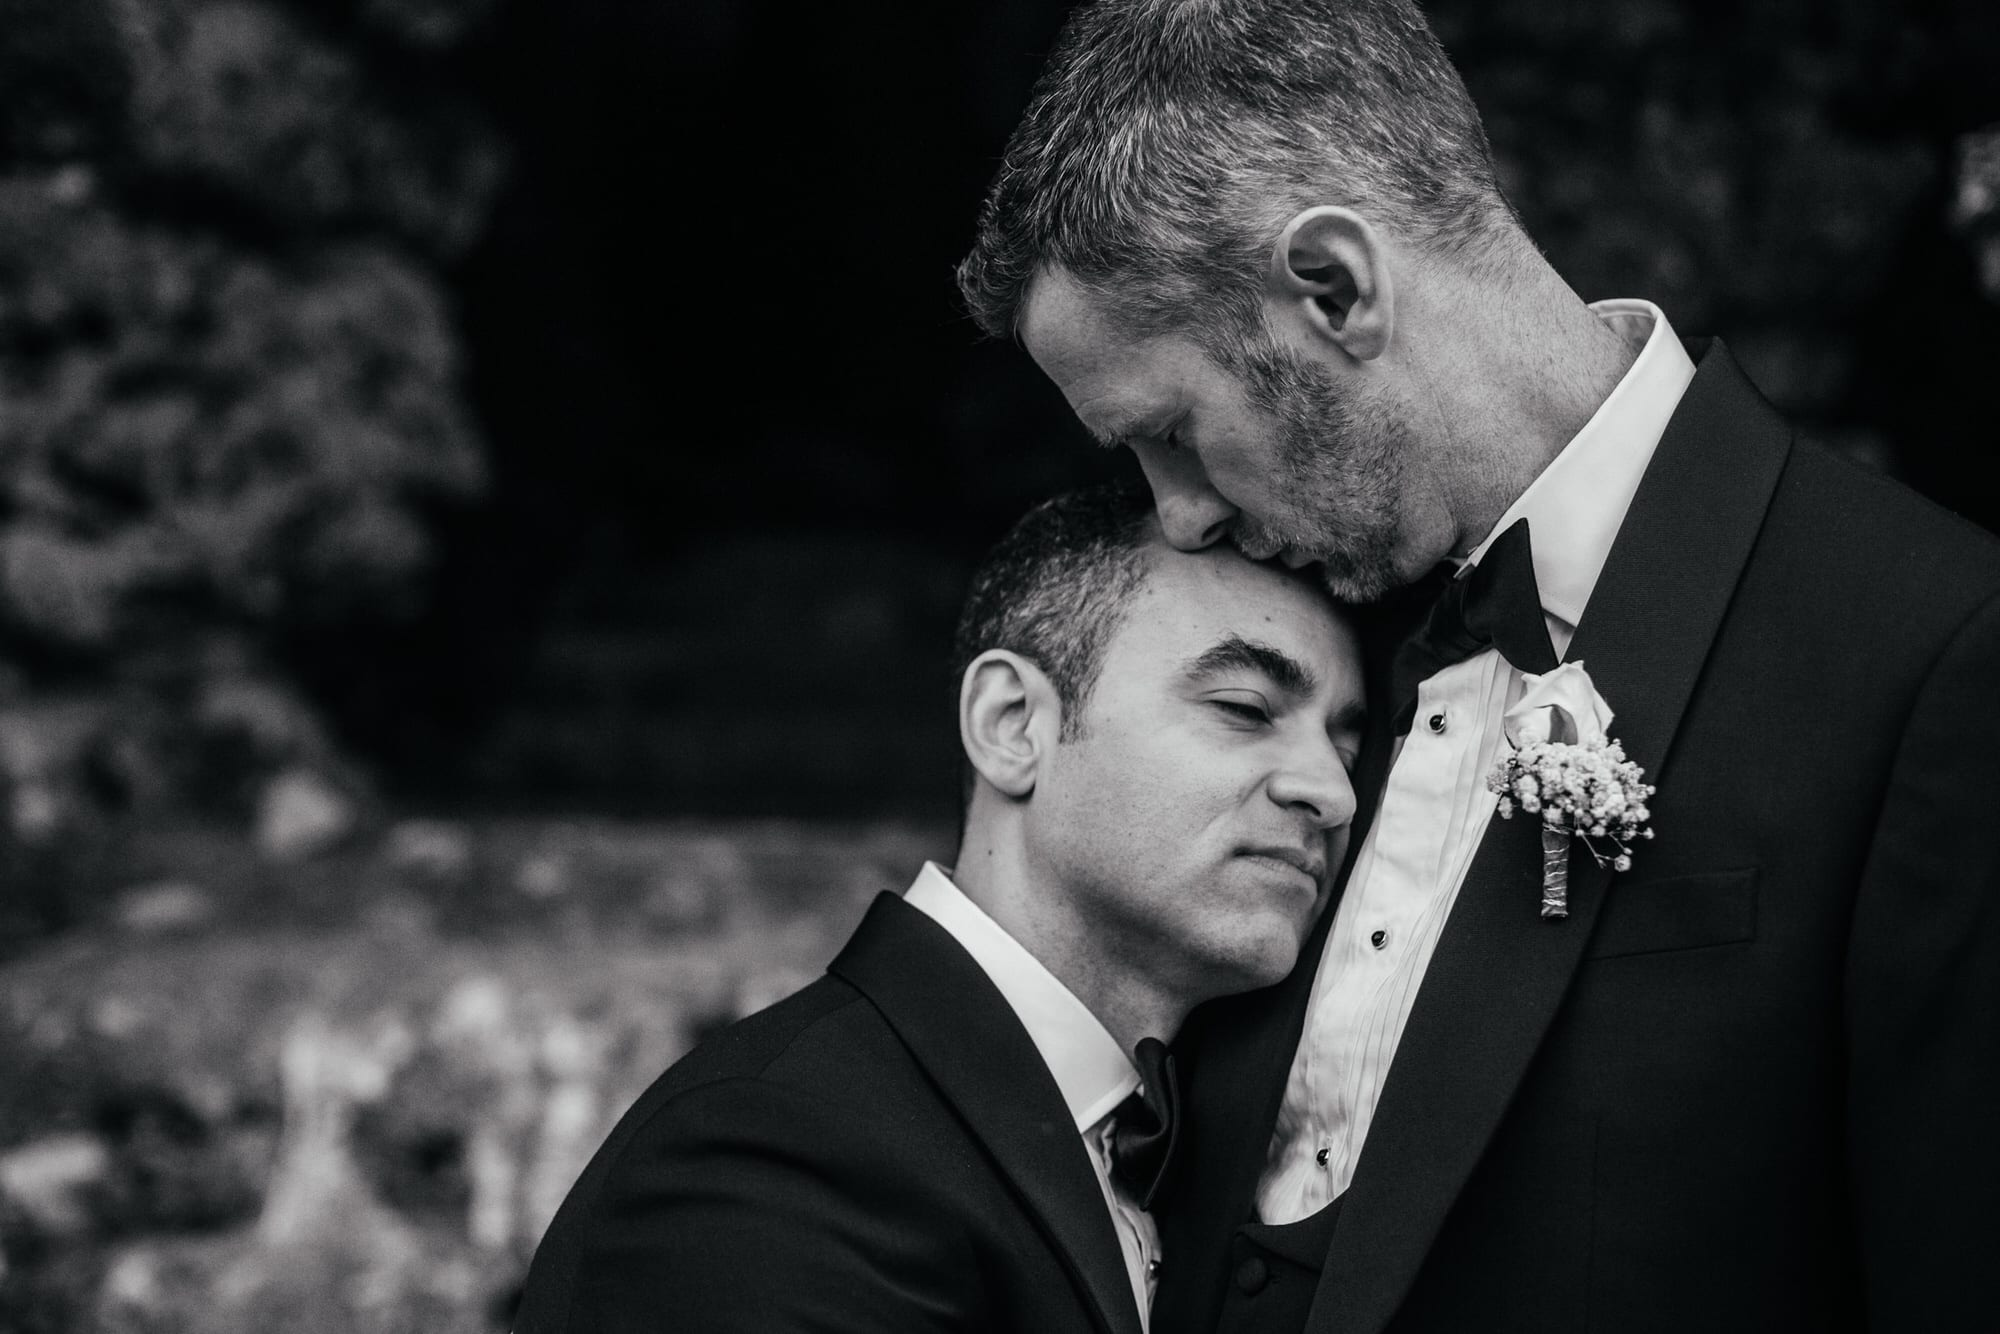 Gay couple posing for an intimate portrait on their wedding day in Lisbon